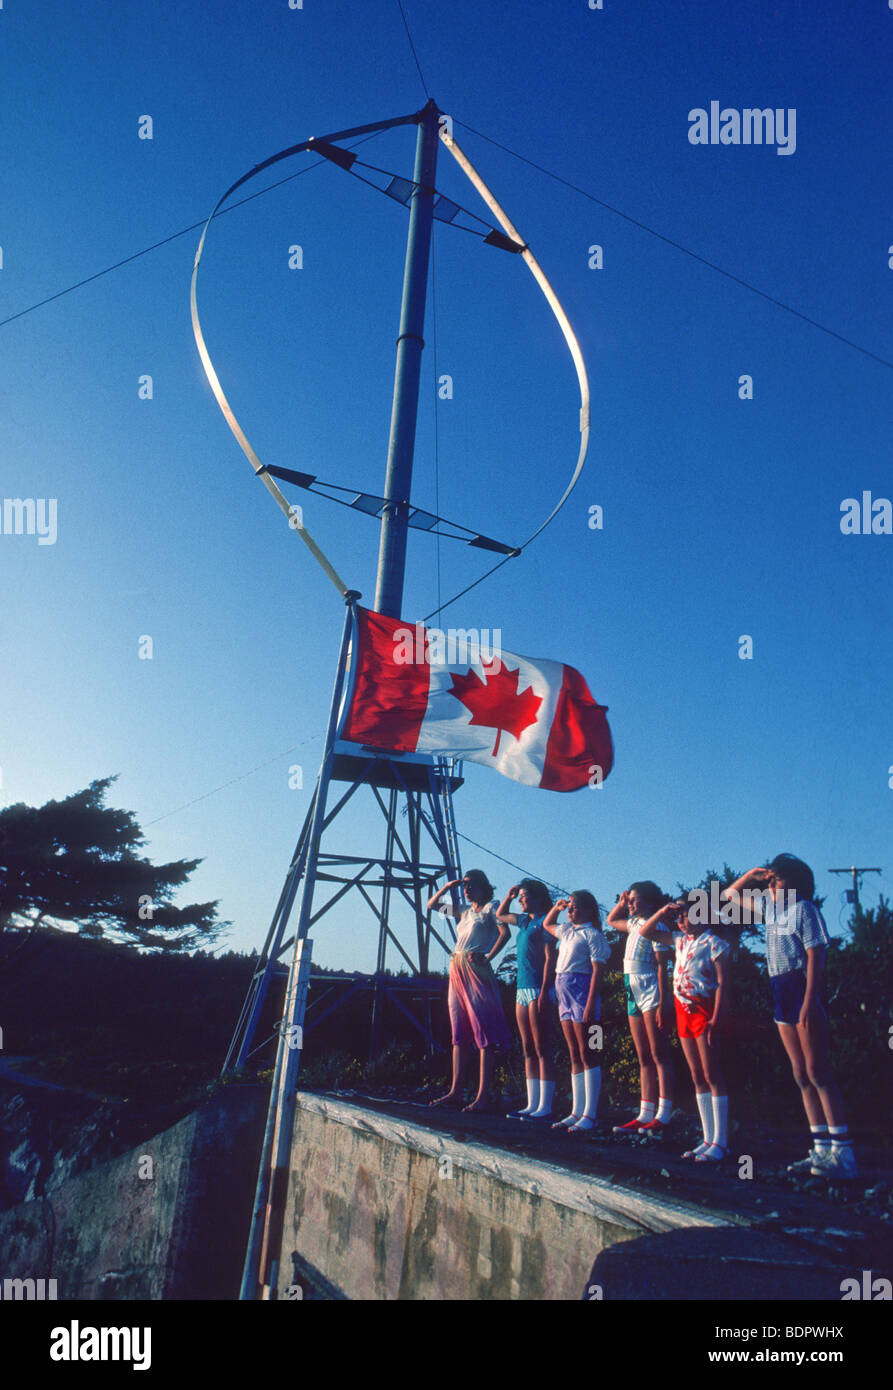 Children salute Canadian flag in front of wind turbine - Stock Image